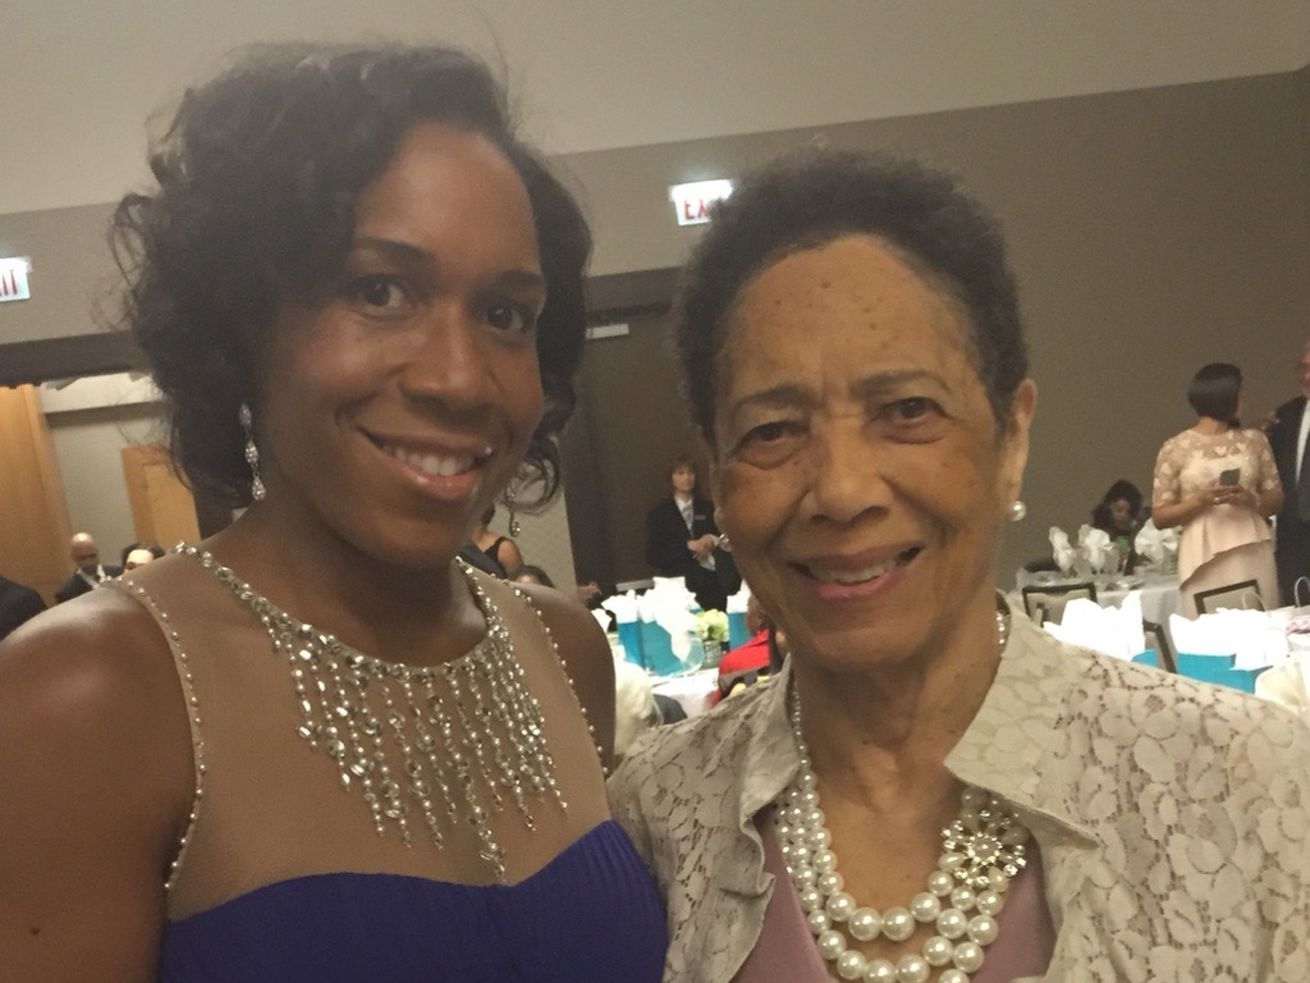 Lt. Gov. Julianna Stratton and her mother, Velma Wiggins, who died in 2016 of Alzheimer's disease undiagnosed until three years before her death. It led Stratton to partner with the Alzheimer's Association on a pioneering bill now on Gov. J.B. Pritzker's desk: Illinois would be the first state to require health care professionals get training on diagnosis, treatment and care of Alzheimer's.